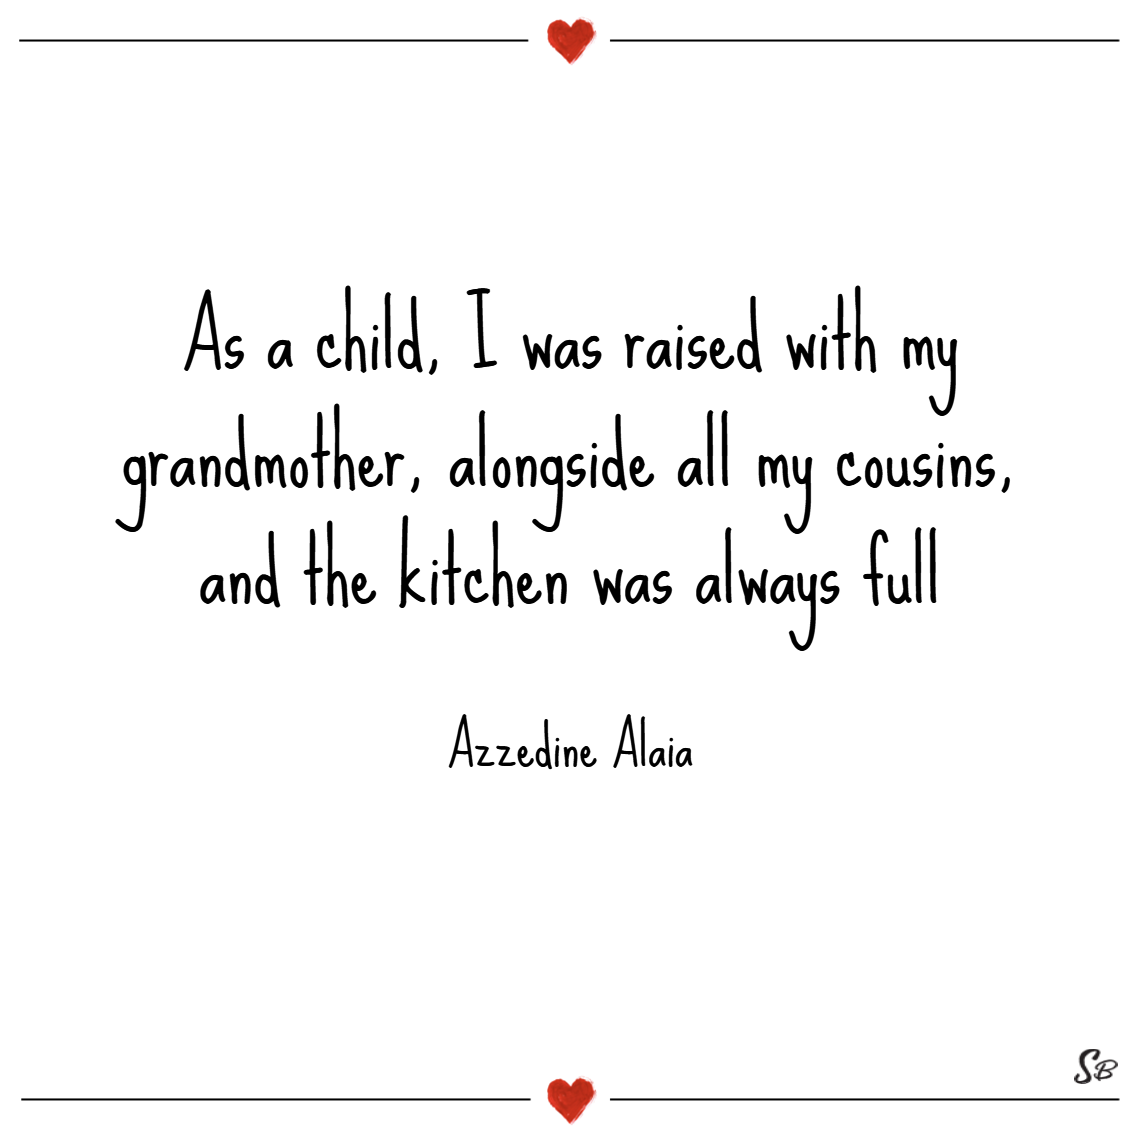 As a child, i was raised with my grandmother, alongside all my cousins, and the kitchen was always full. – azzedine alaia